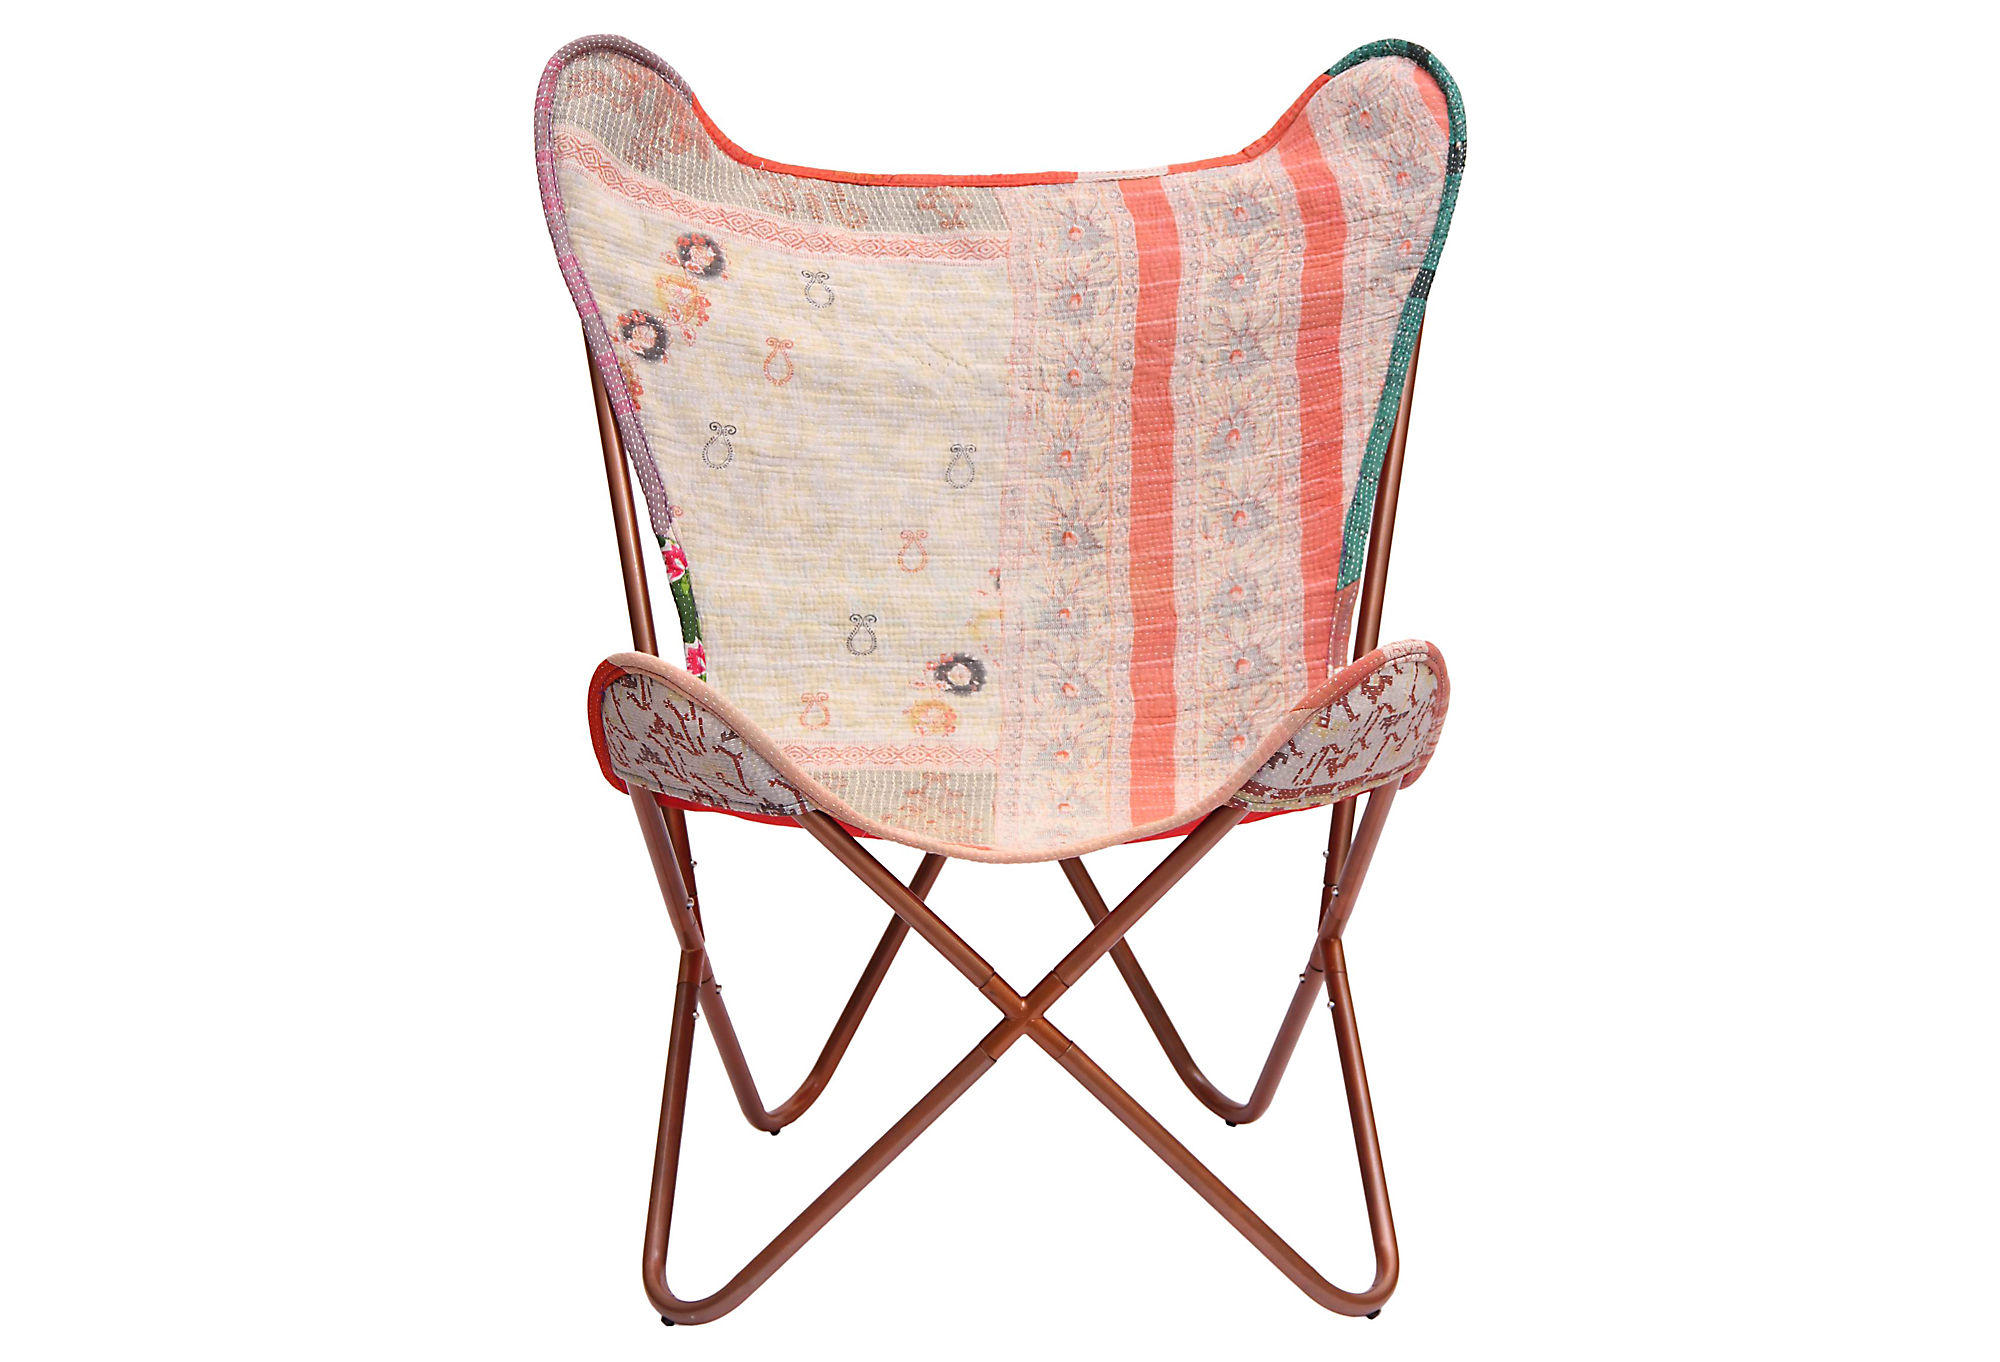 White Butterfly Chair Kantha Butterfly Chair White Coral From One Kings Lane